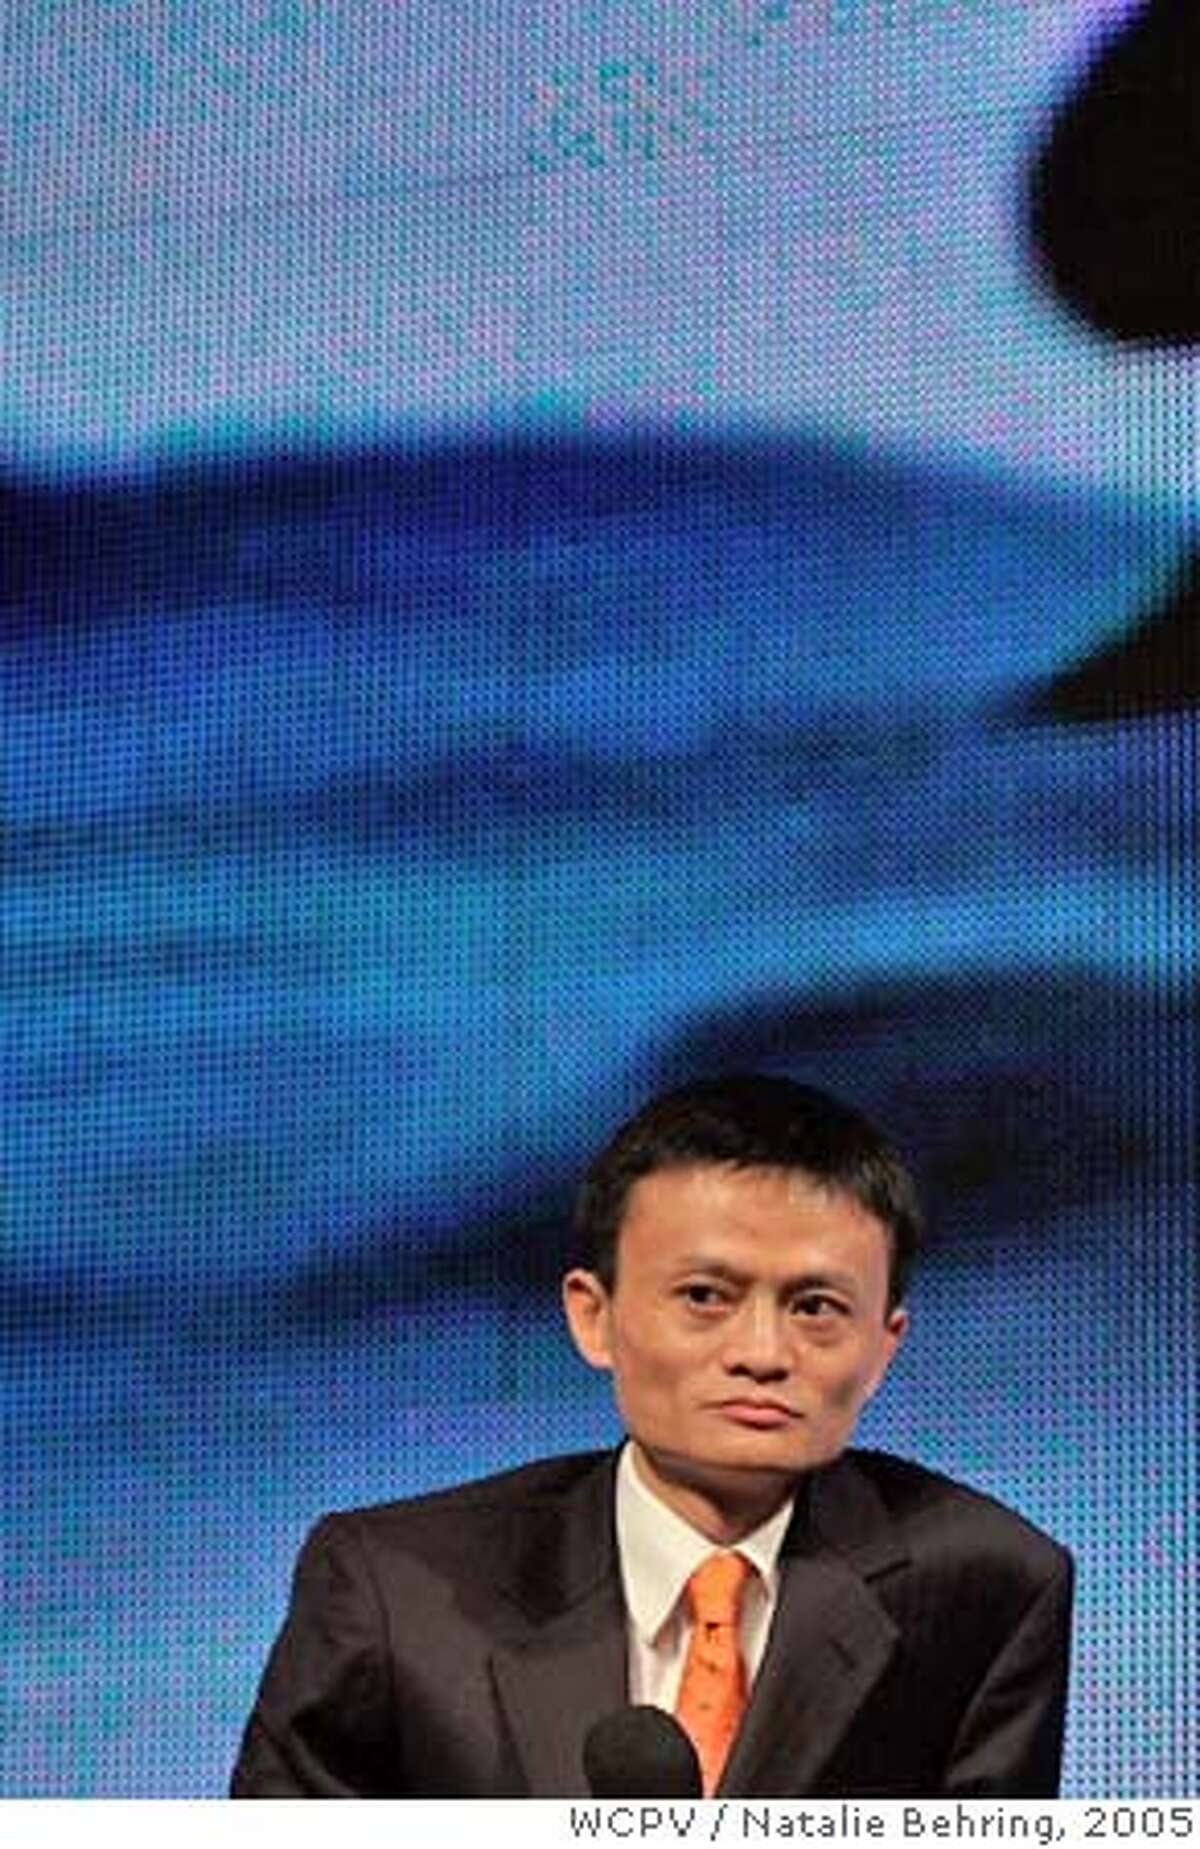 Jack Ma of Alibaba.com listens as former US president Clinton speaks during China Internet Summit in Hangzhou China